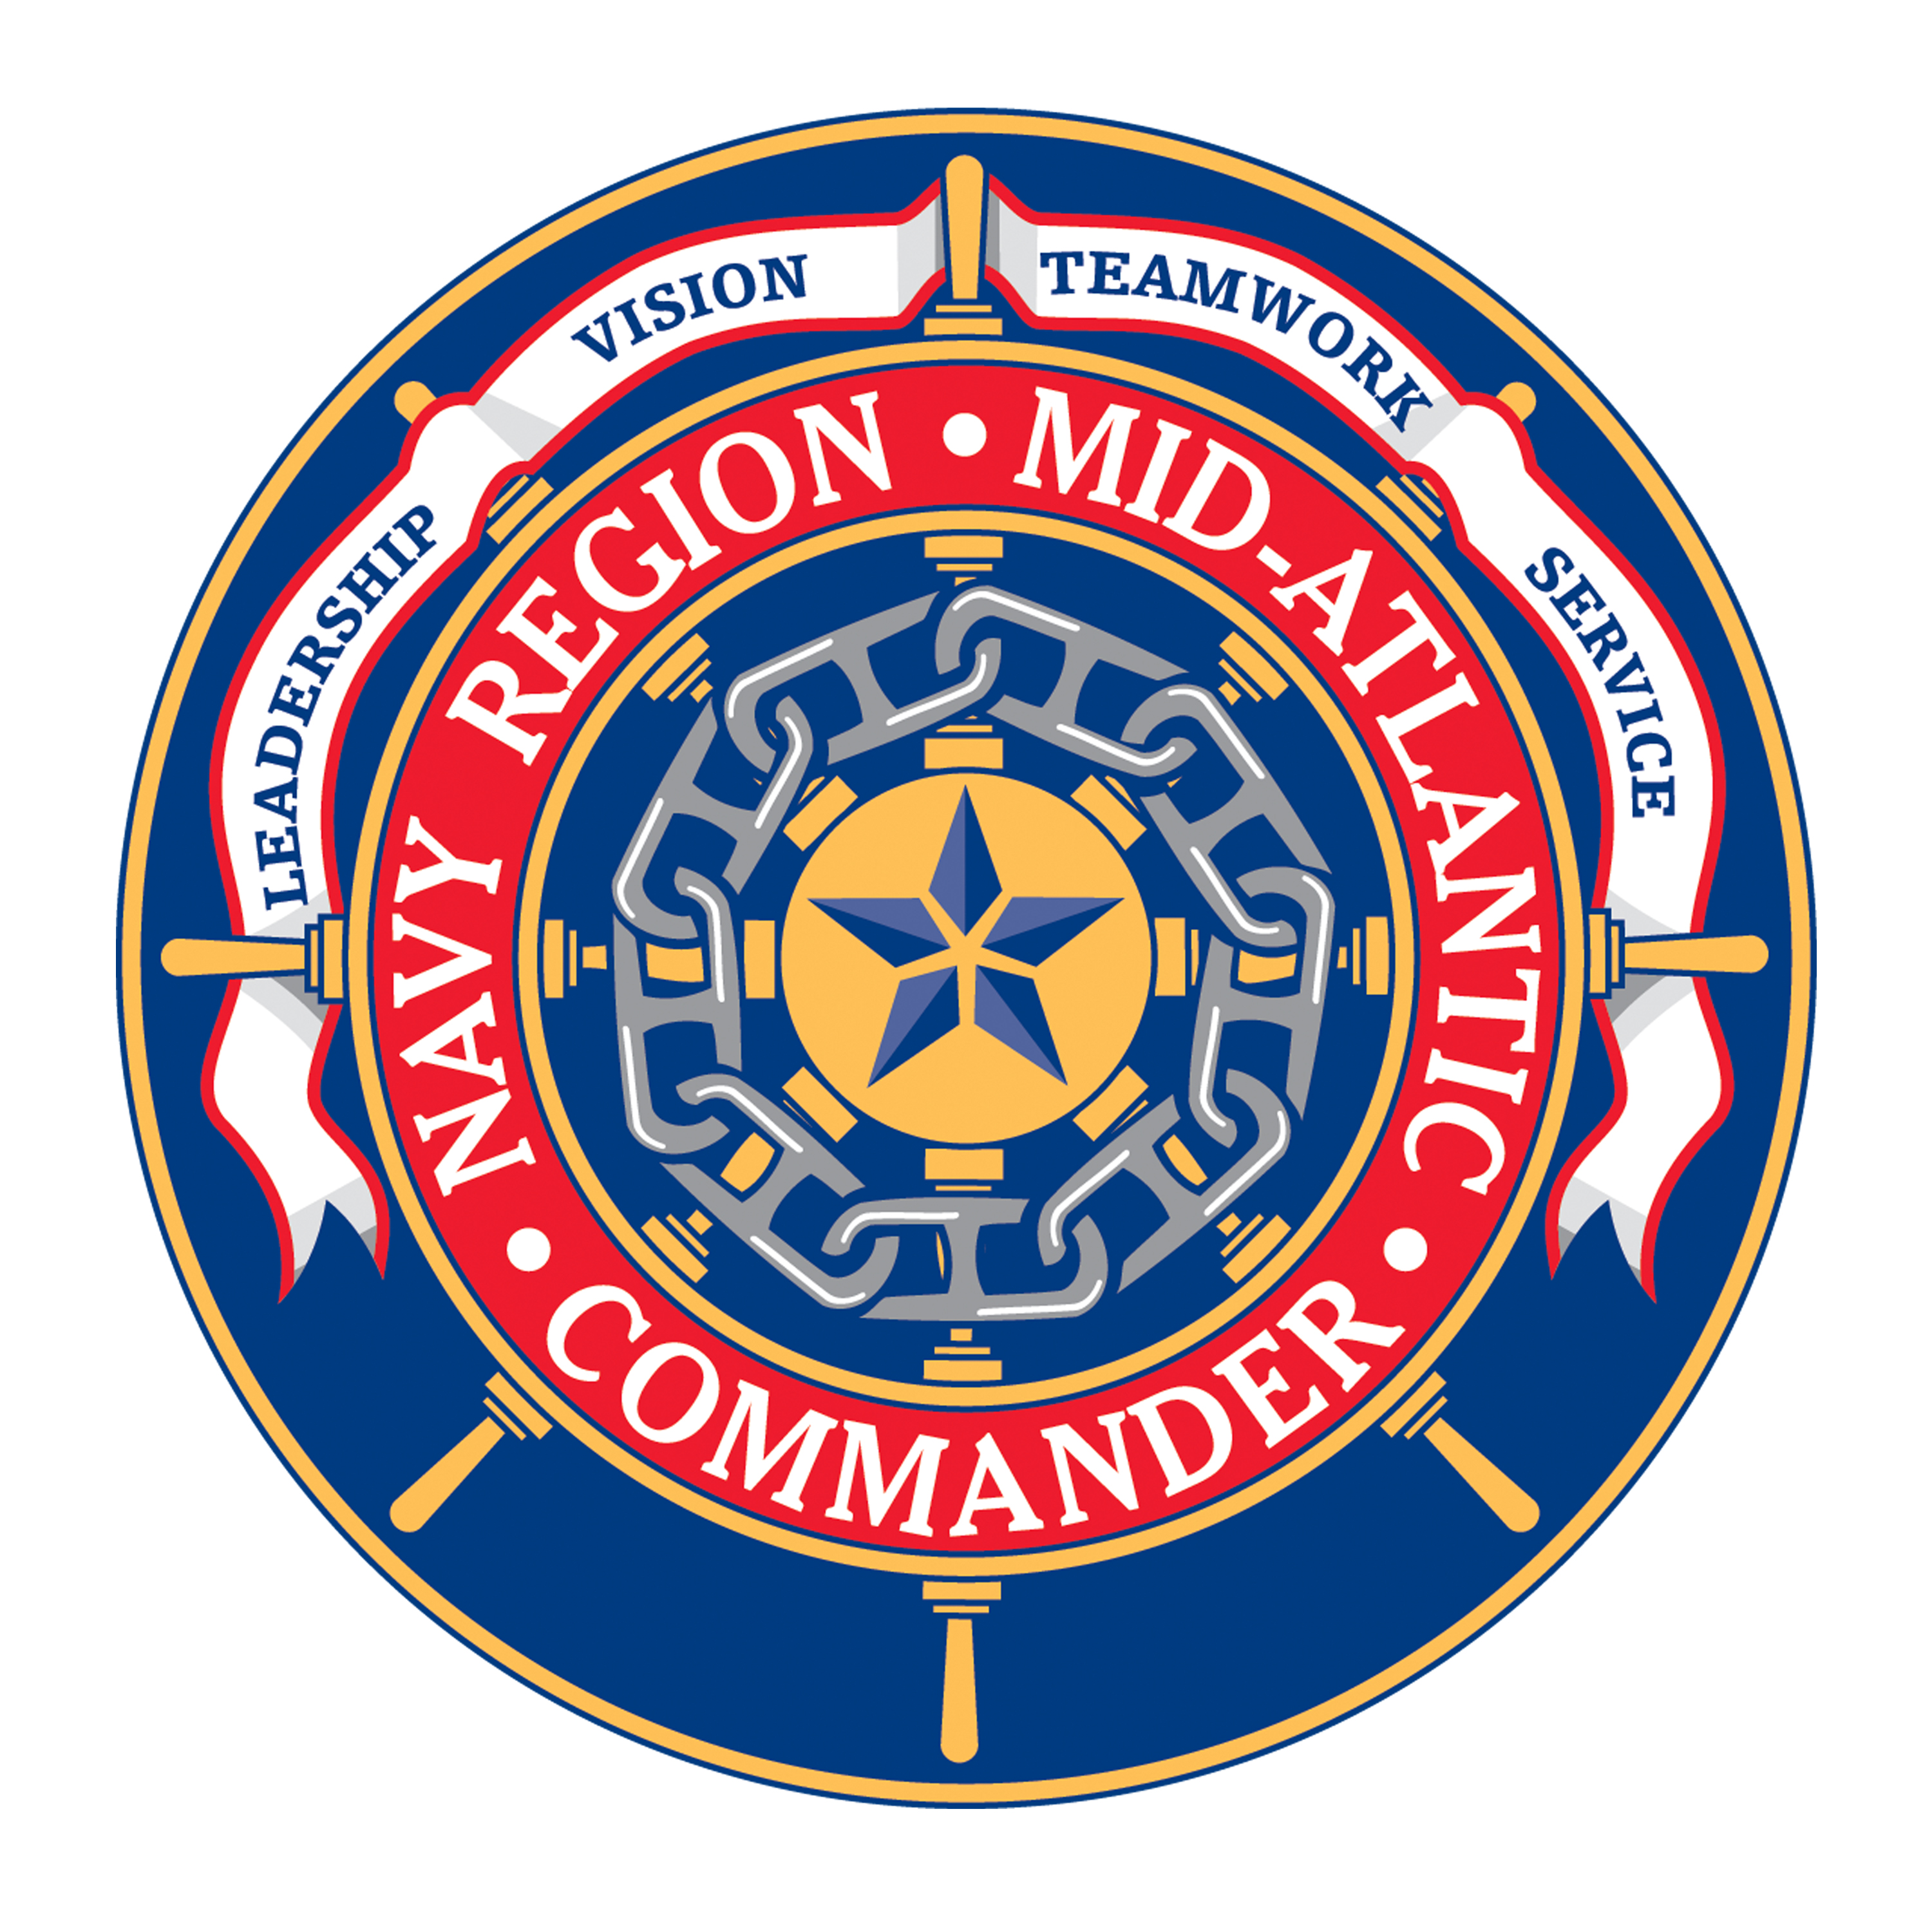 Navy Region Mid-Atlantic